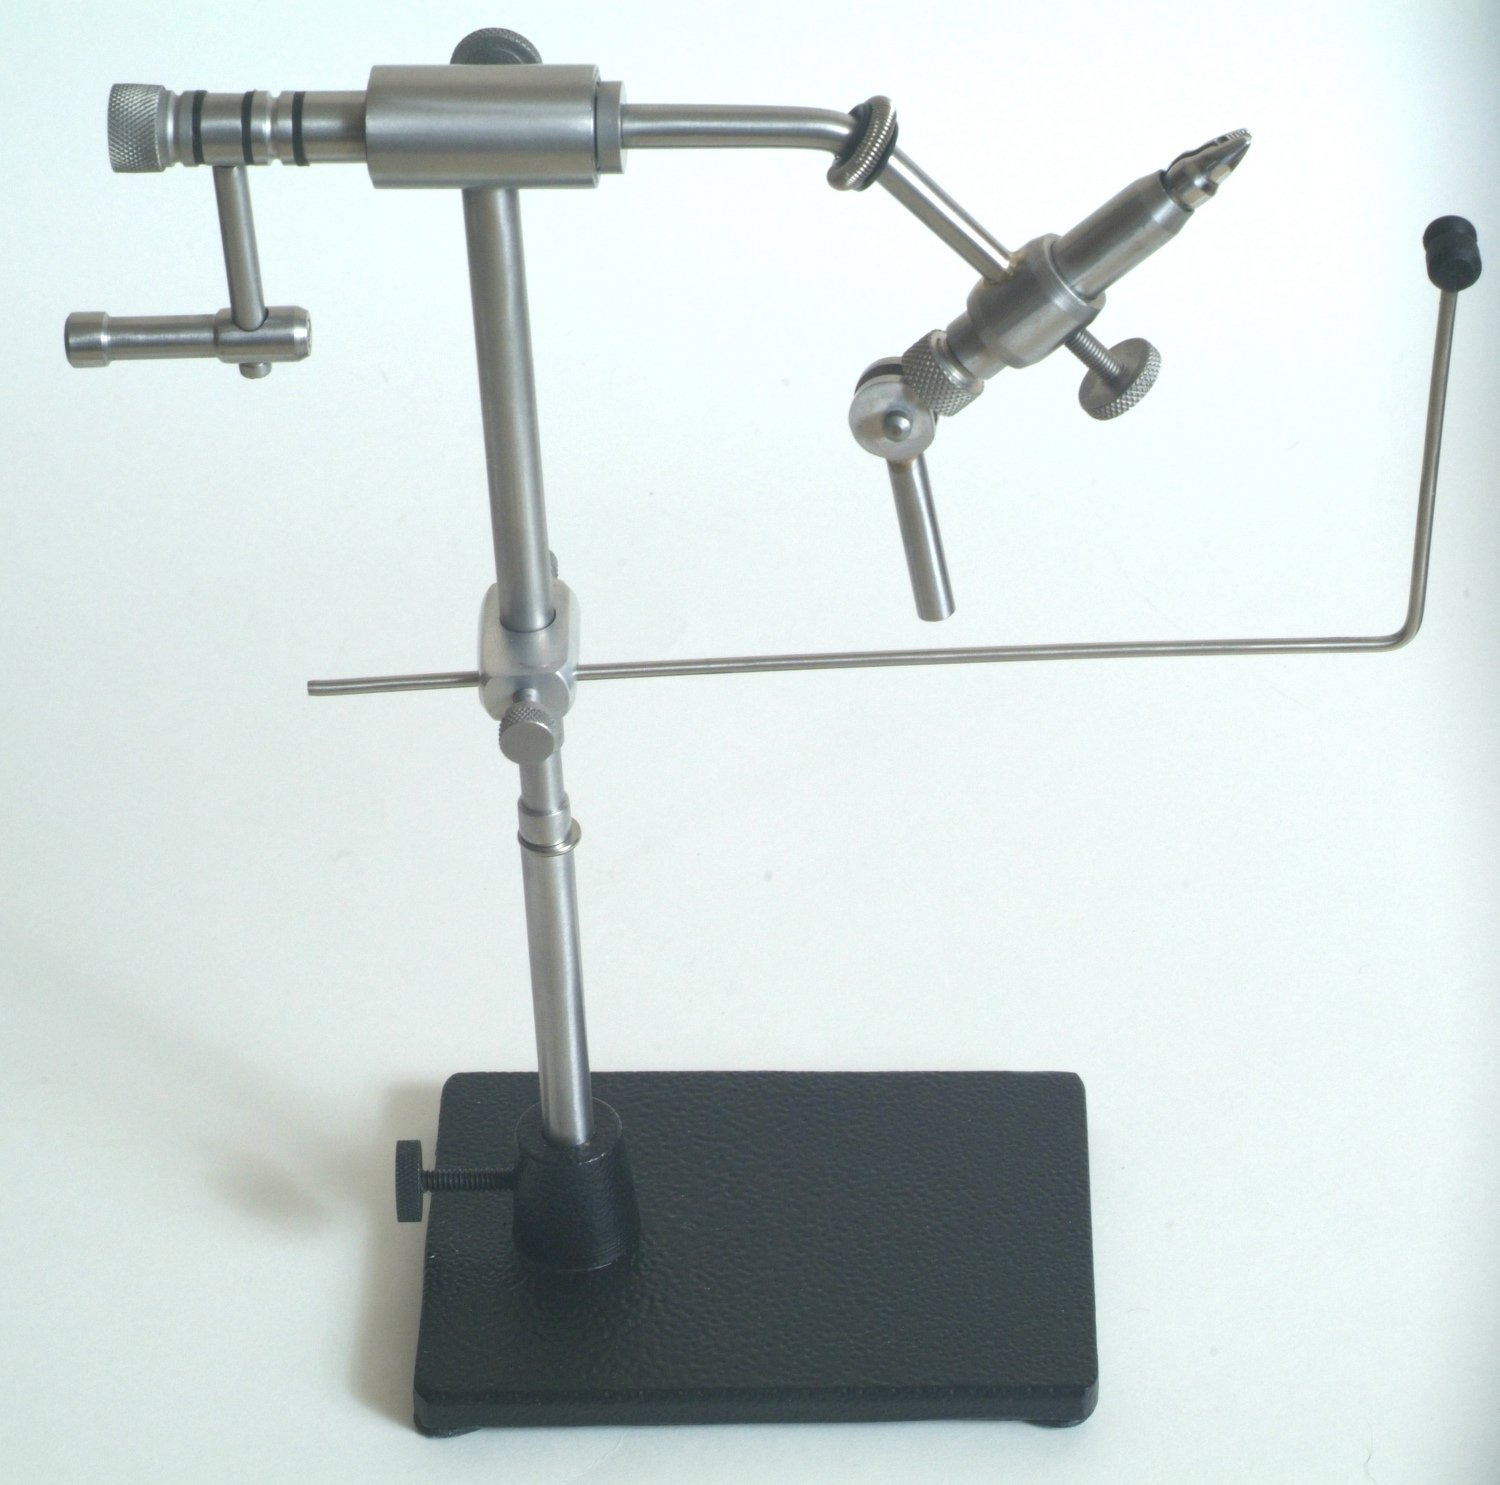 Fly Tying Vise for Fly Fishing: FFS Raptor Fly Tying Vise by S.F. Products